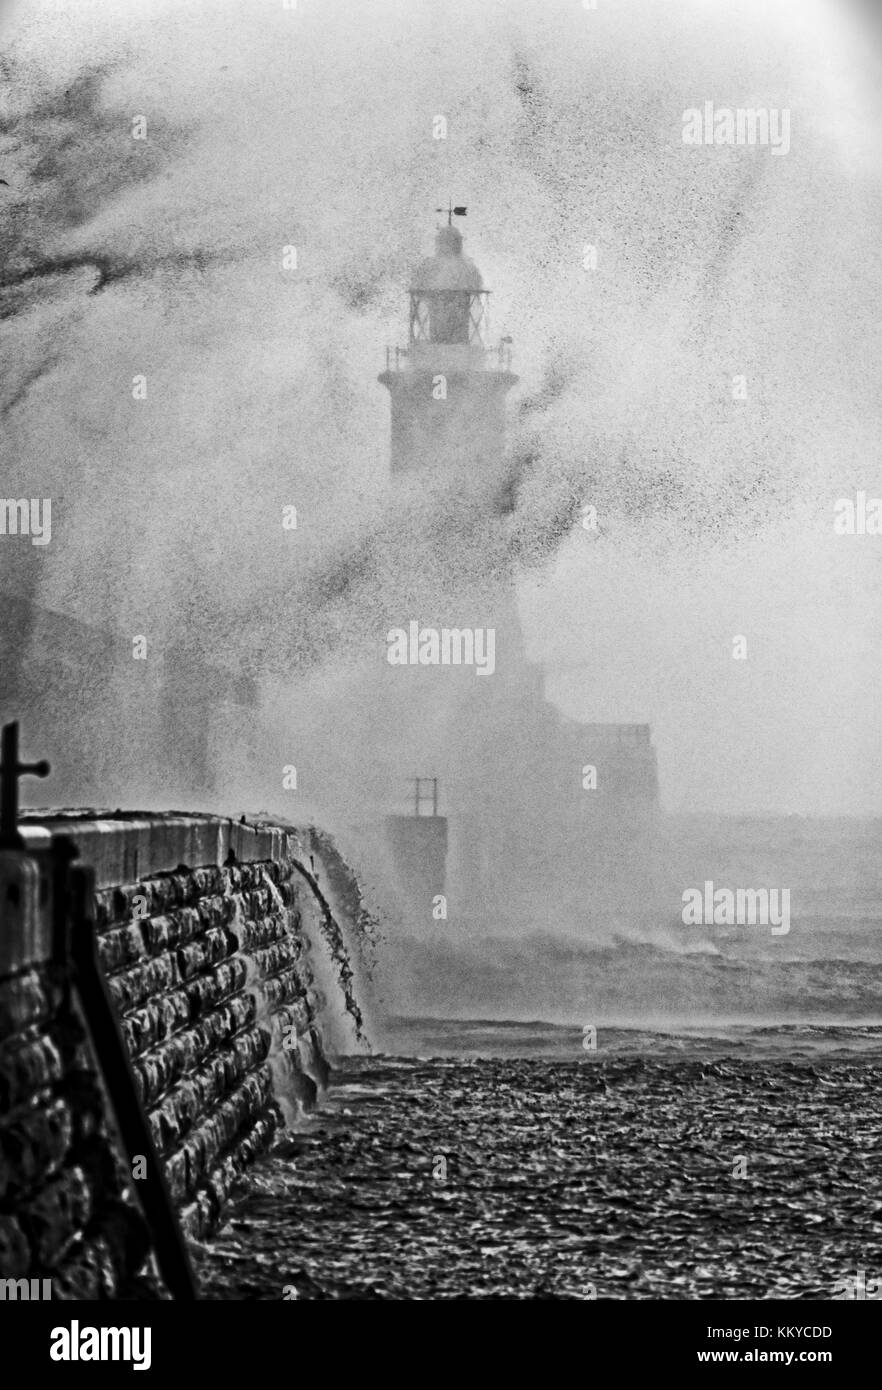 Tynemouth North Pier during raging winter storm - Stock Image